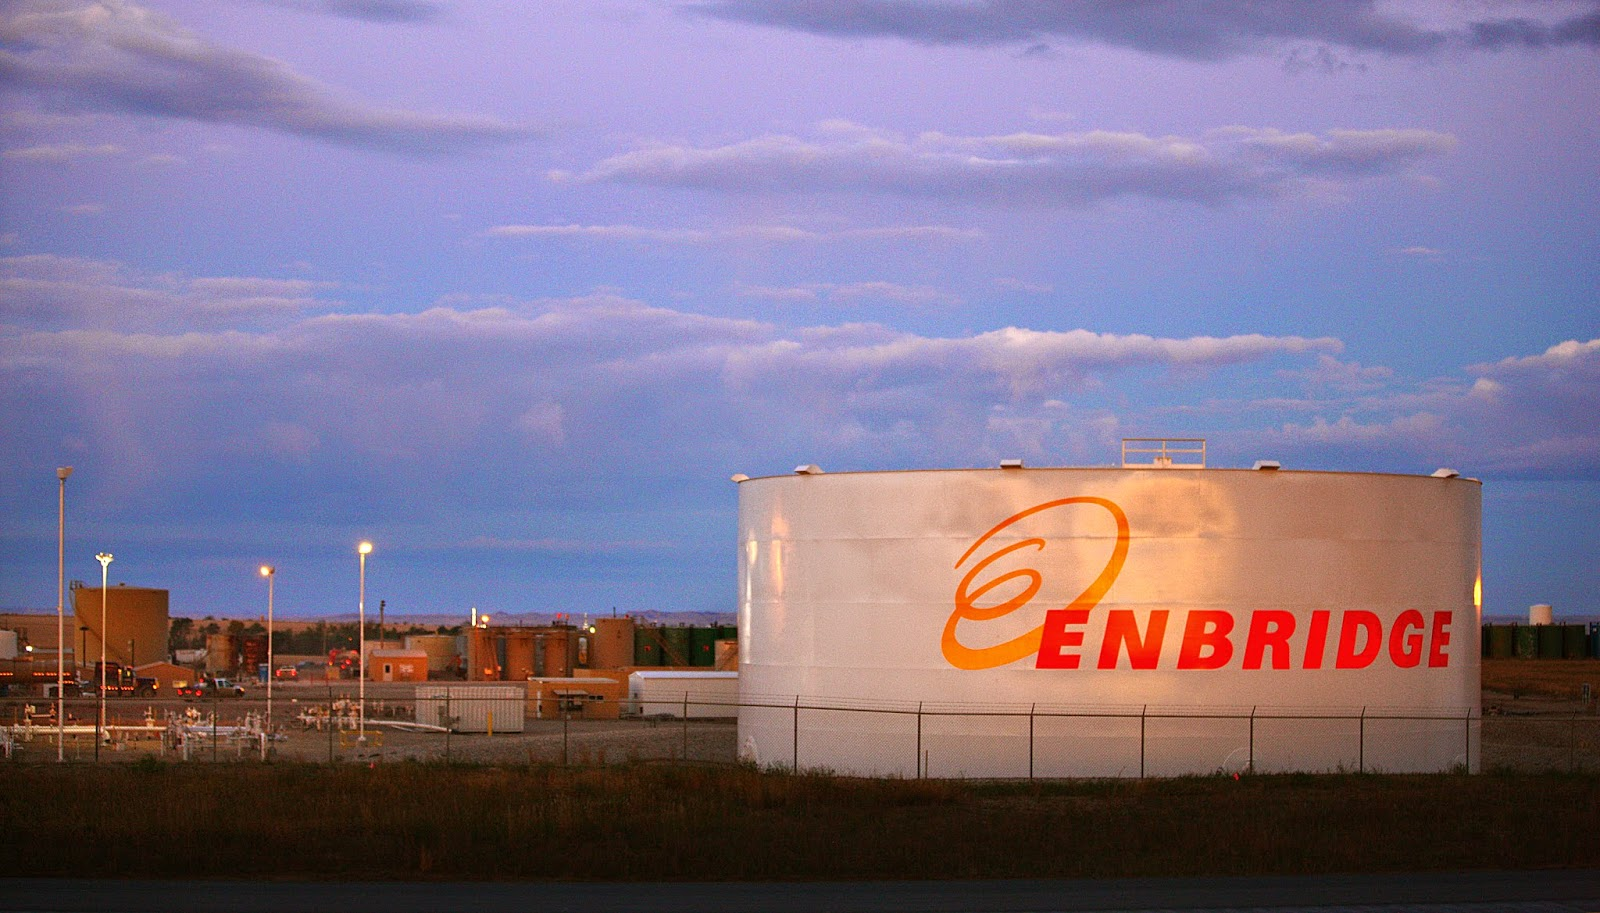 Enbridge plans to increase pipeline shipments of oil from Canada by reversing flow on one of its lines temporarily. File photo of an Enbridge storage facility in North Dakota. (Credit: Matthew Staver, Bloomberg) Click to enlarge.